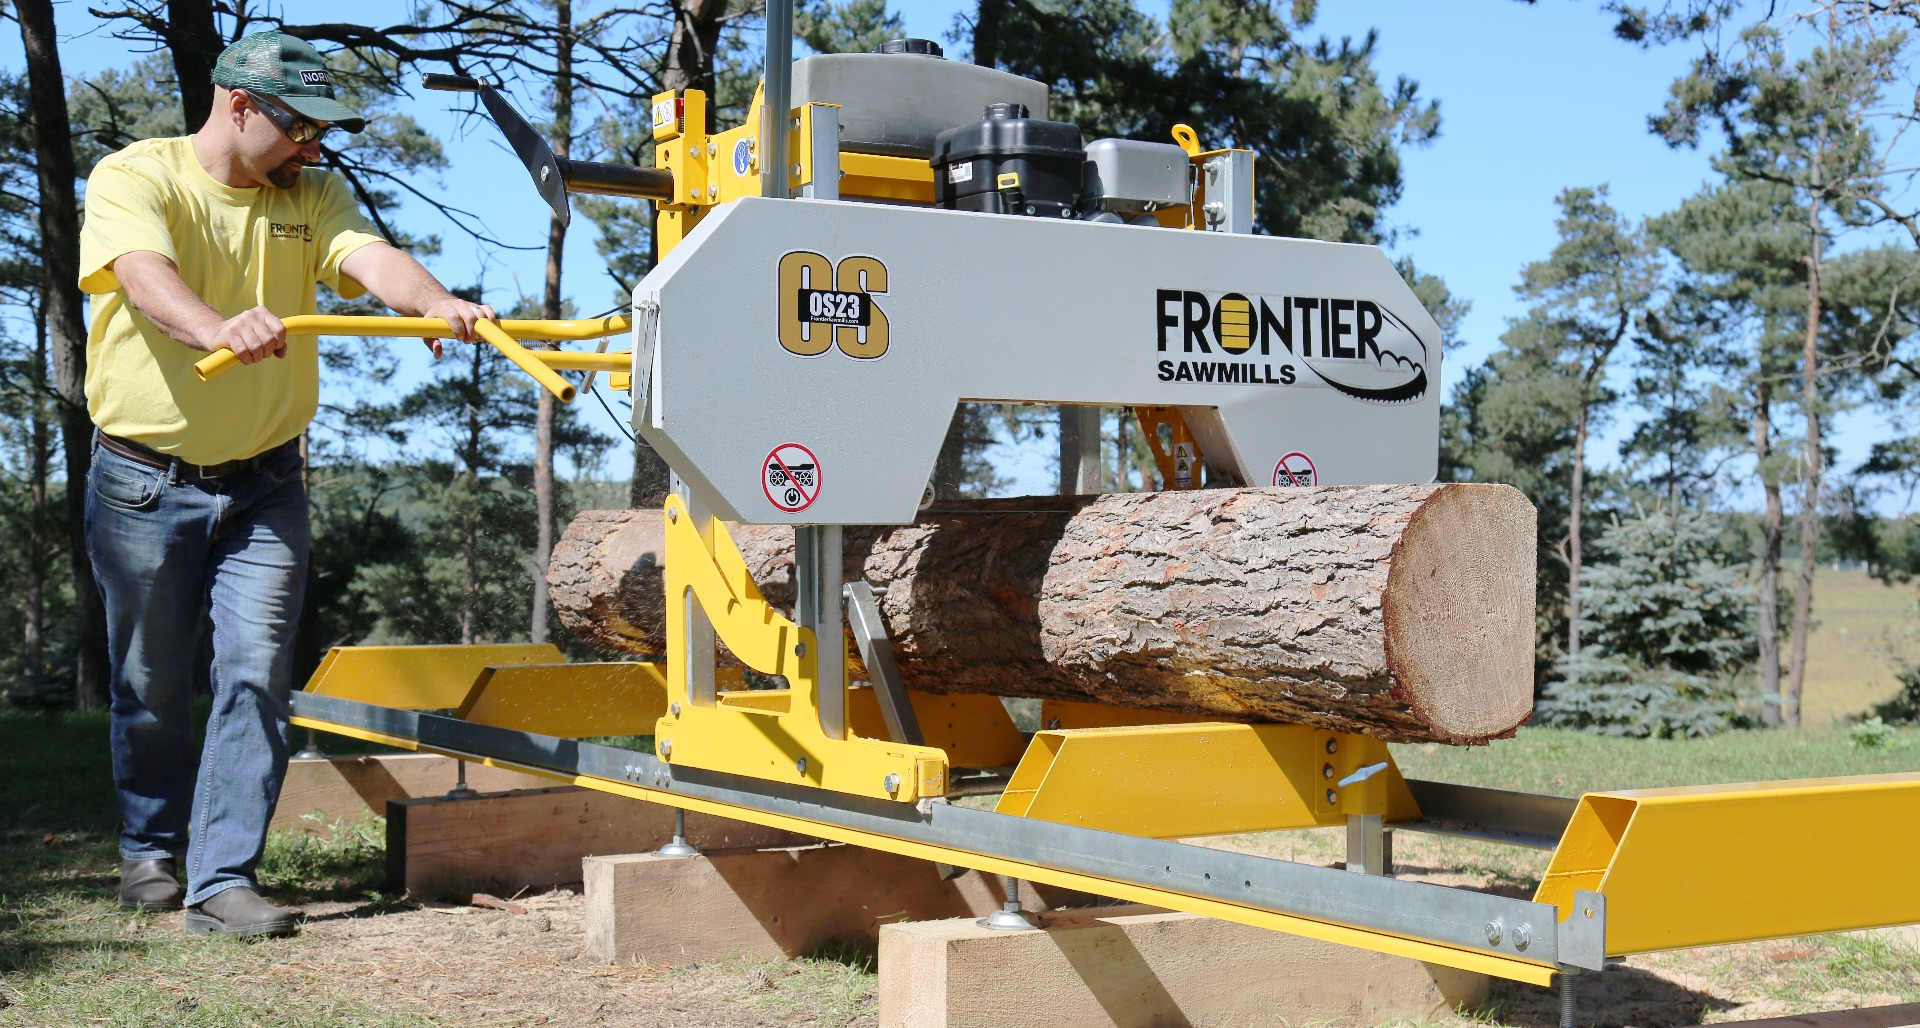 Frontier Sawmill